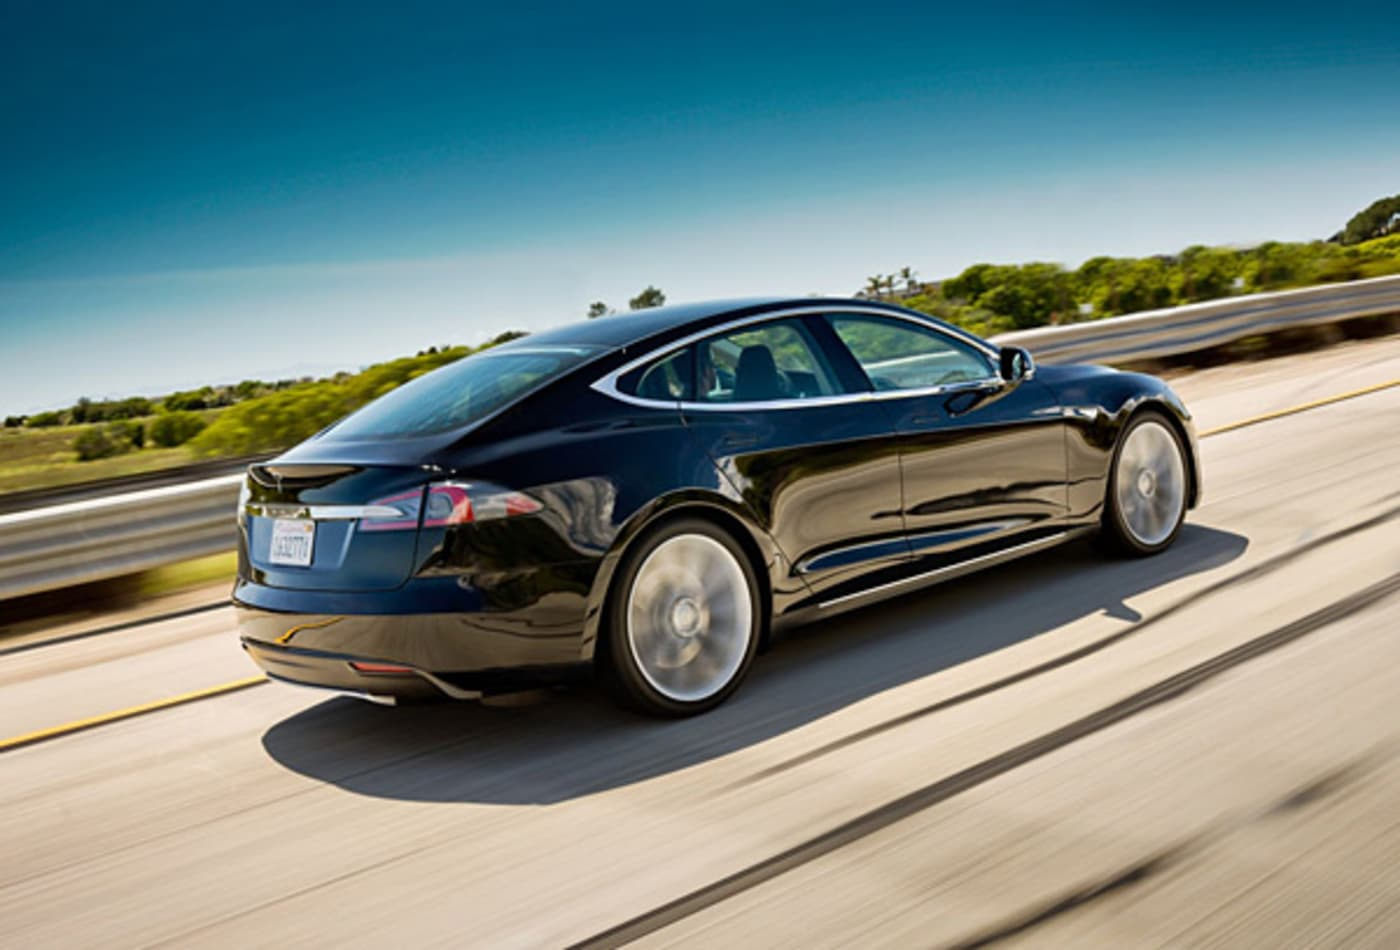 Tesla-S-Luxurious-Electric-Cars.jpg